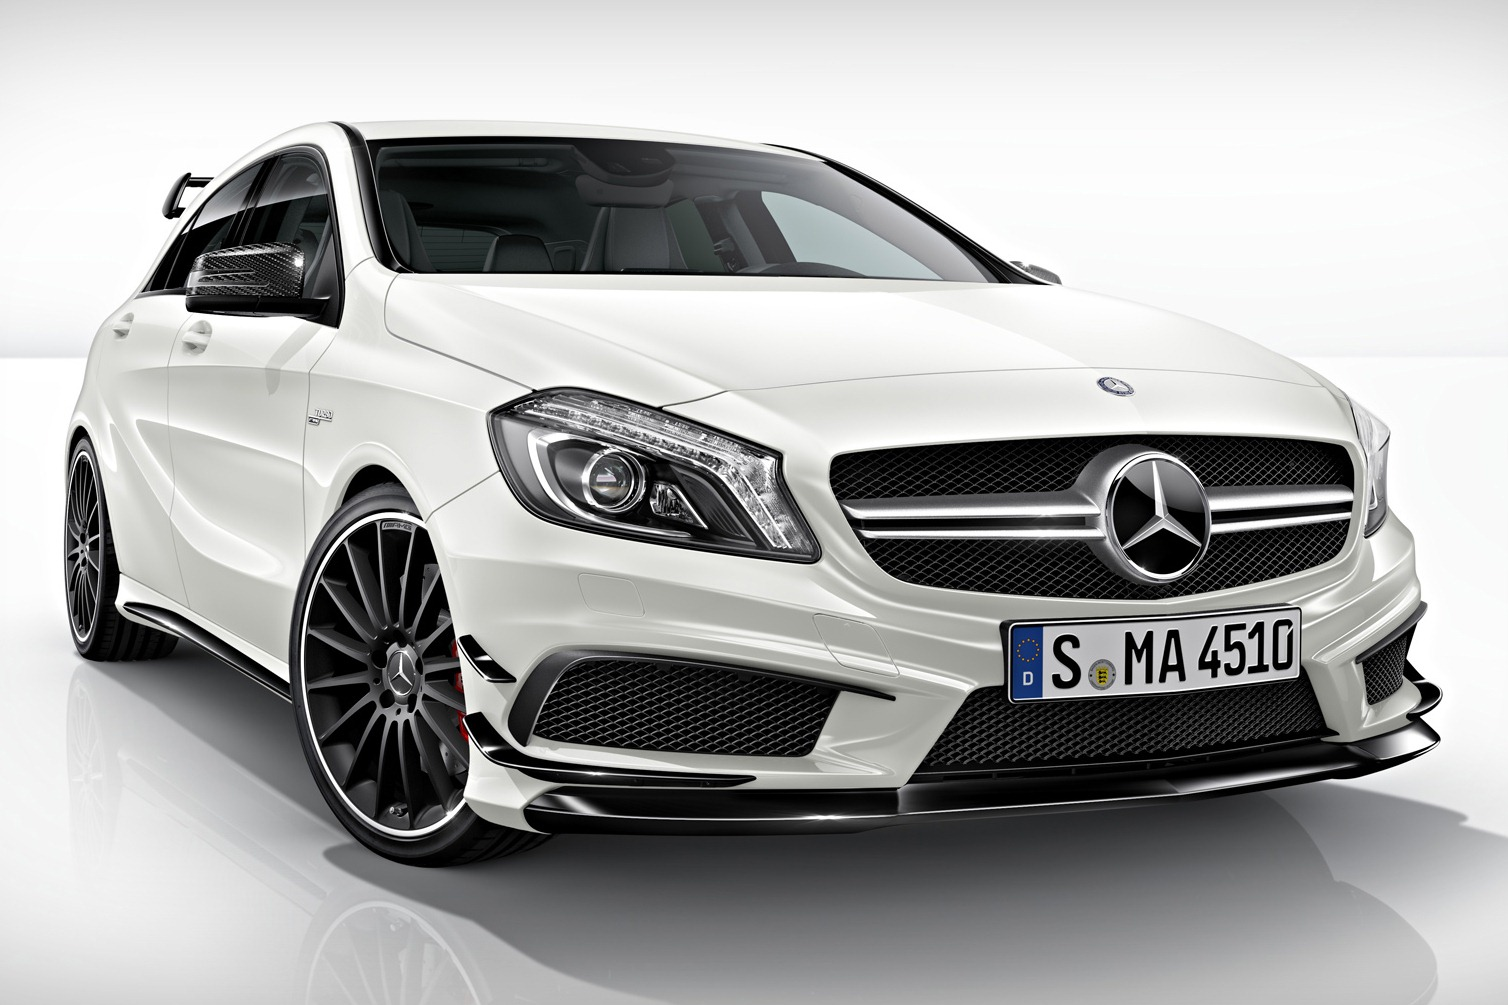 2013 mercedes benz a45 amg revealed autocar news. Black Bedroom Furniture Sets. Home Design Ideas